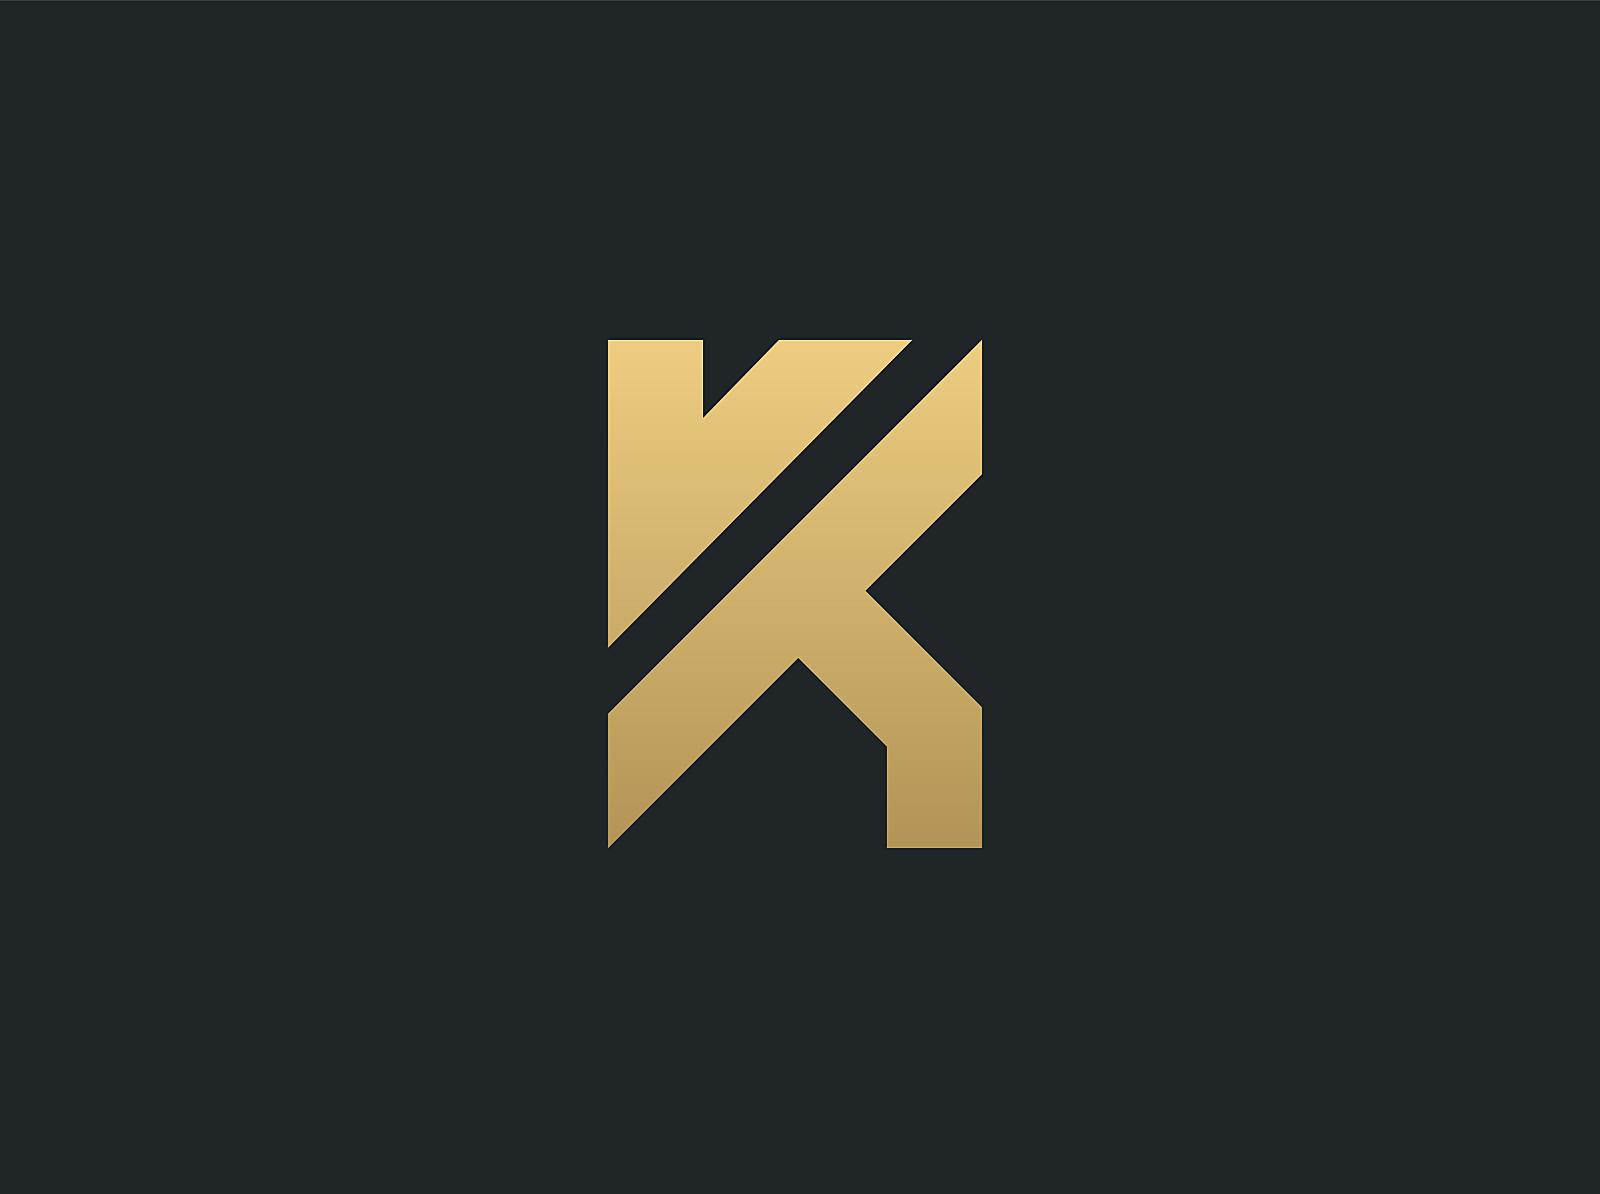 K logo minimalistic design (for sale) by Timon Art on Dribbble